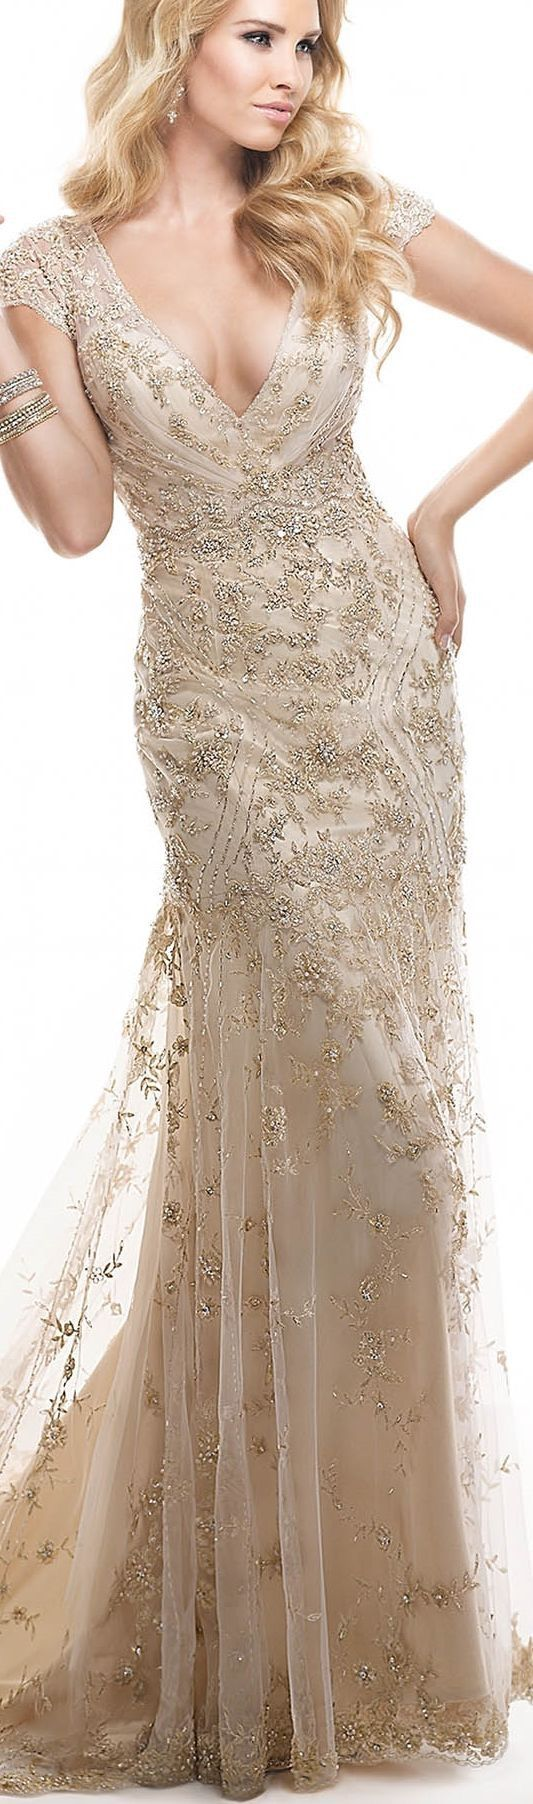 Pin by Amy Harmeier on Champagne Wedding dresses, Gowns